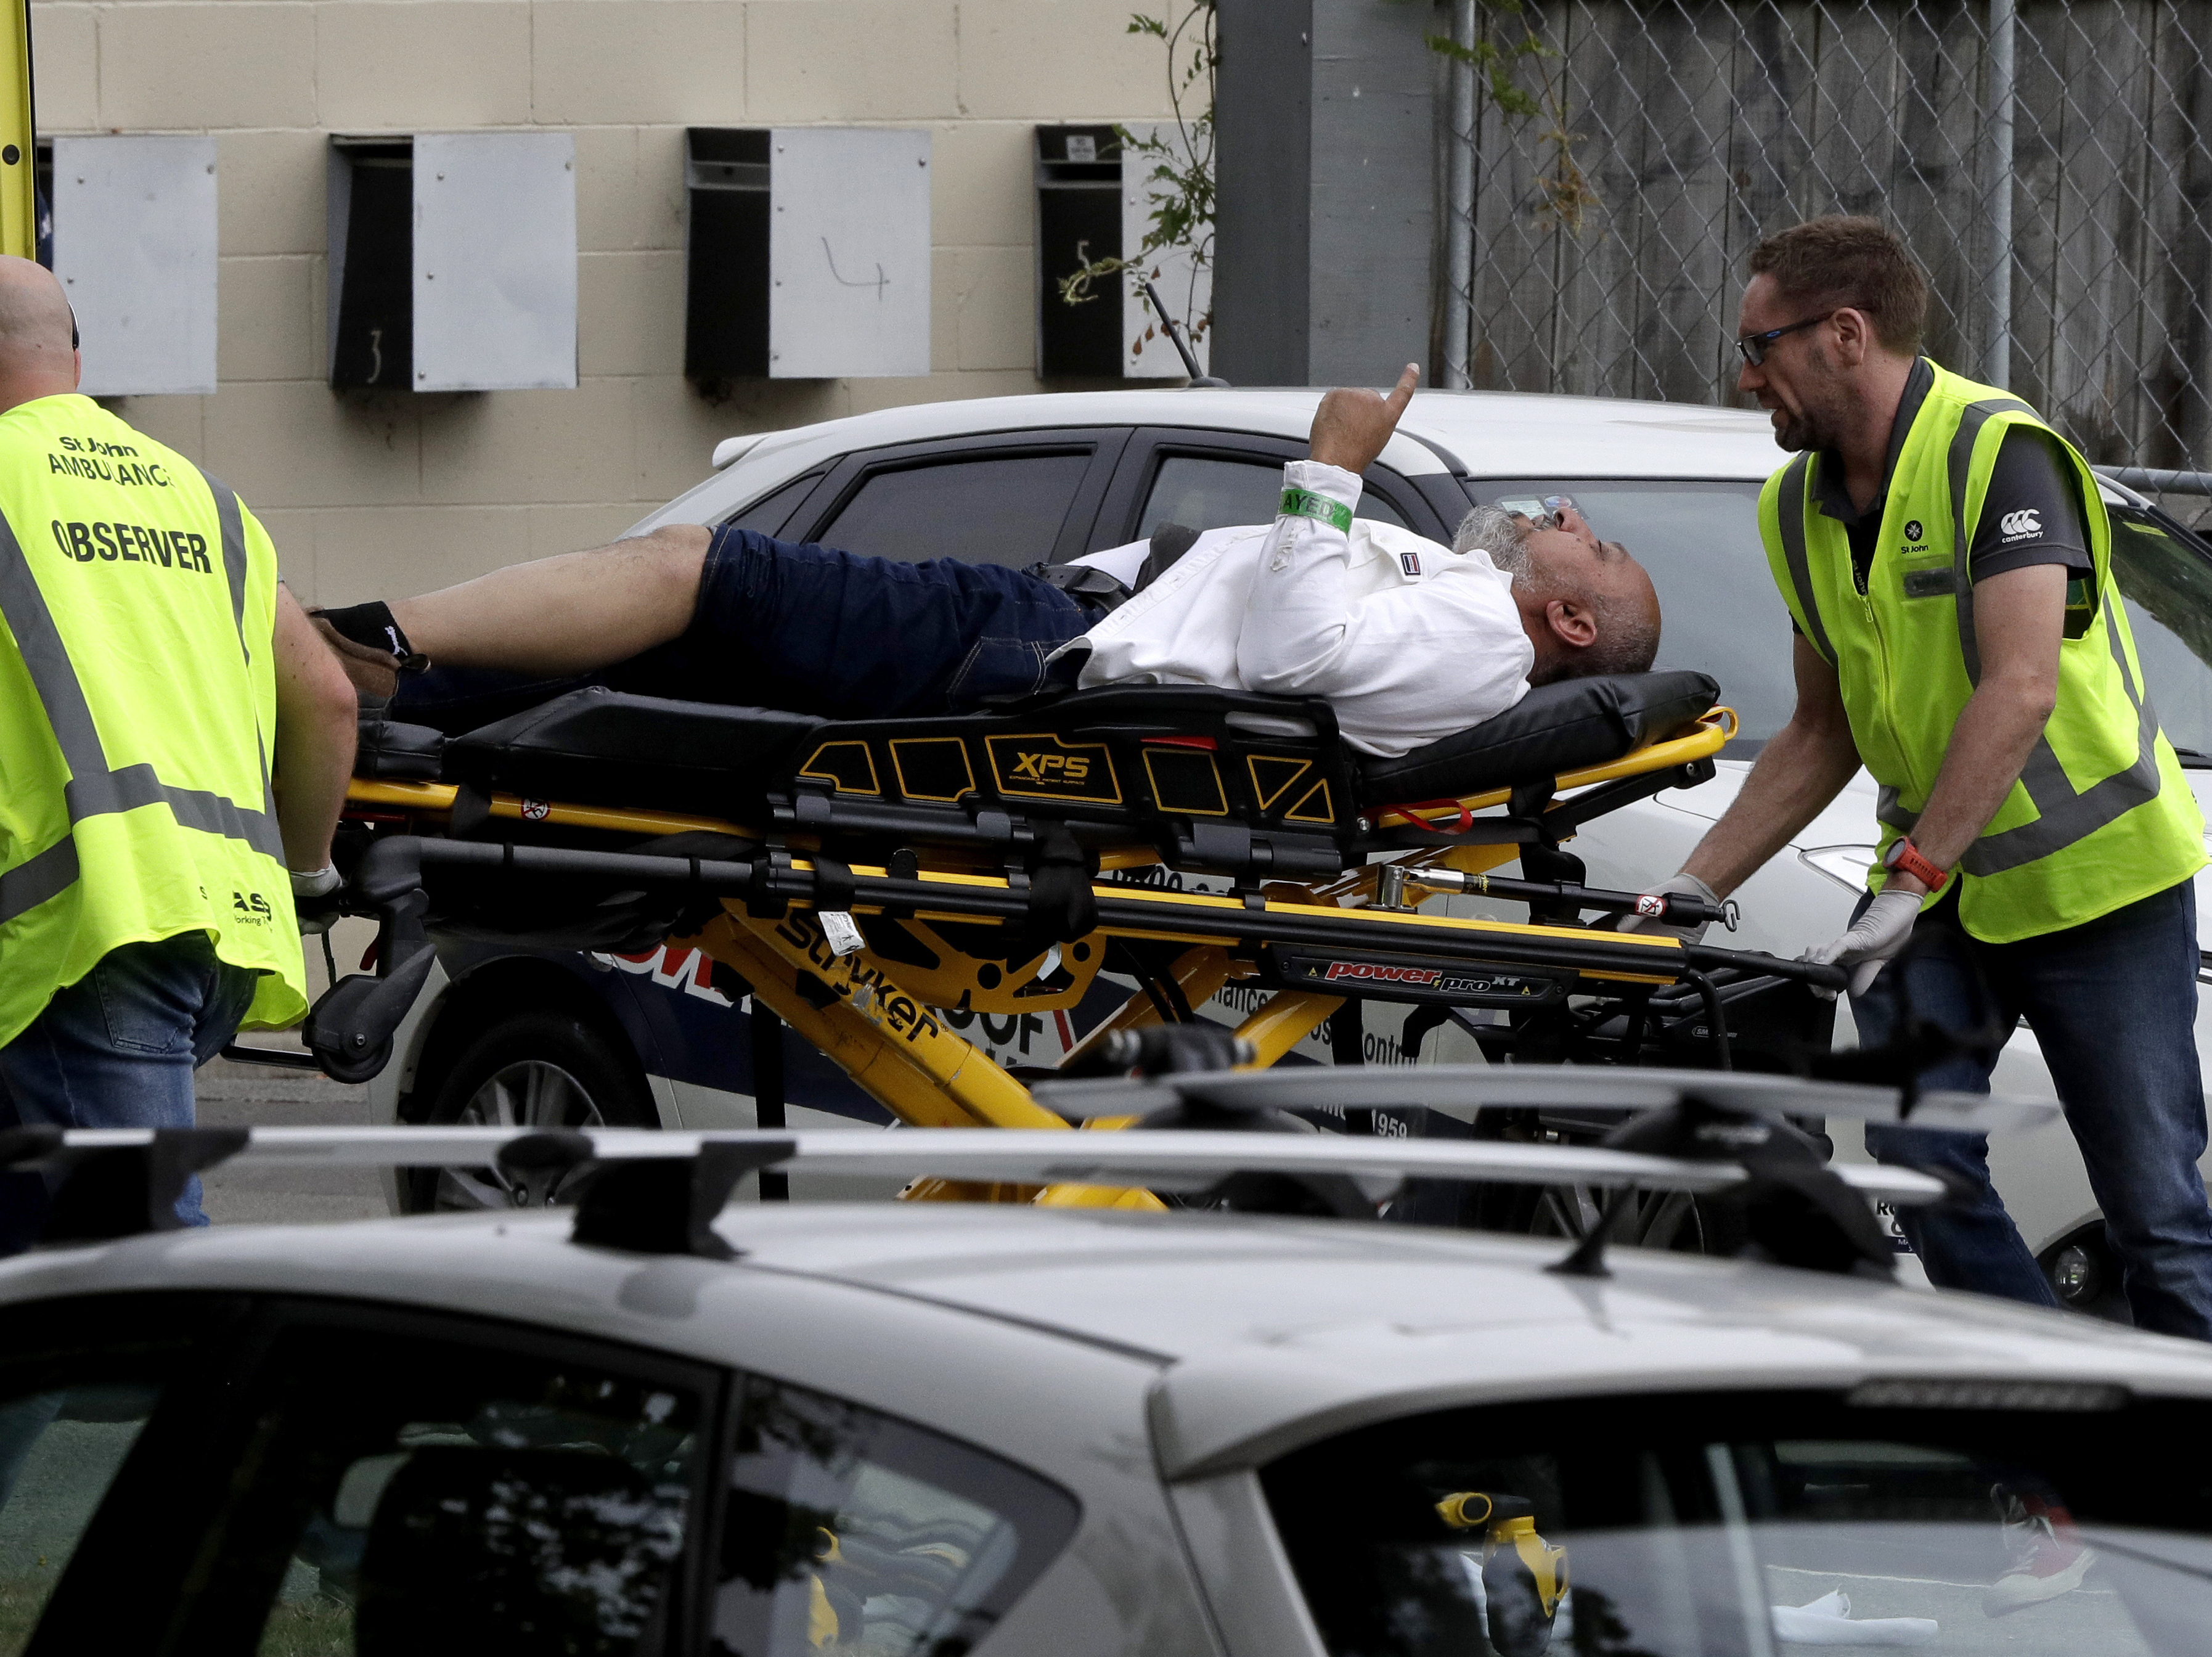 What we know so far about the Christchurch mosque attack suspect